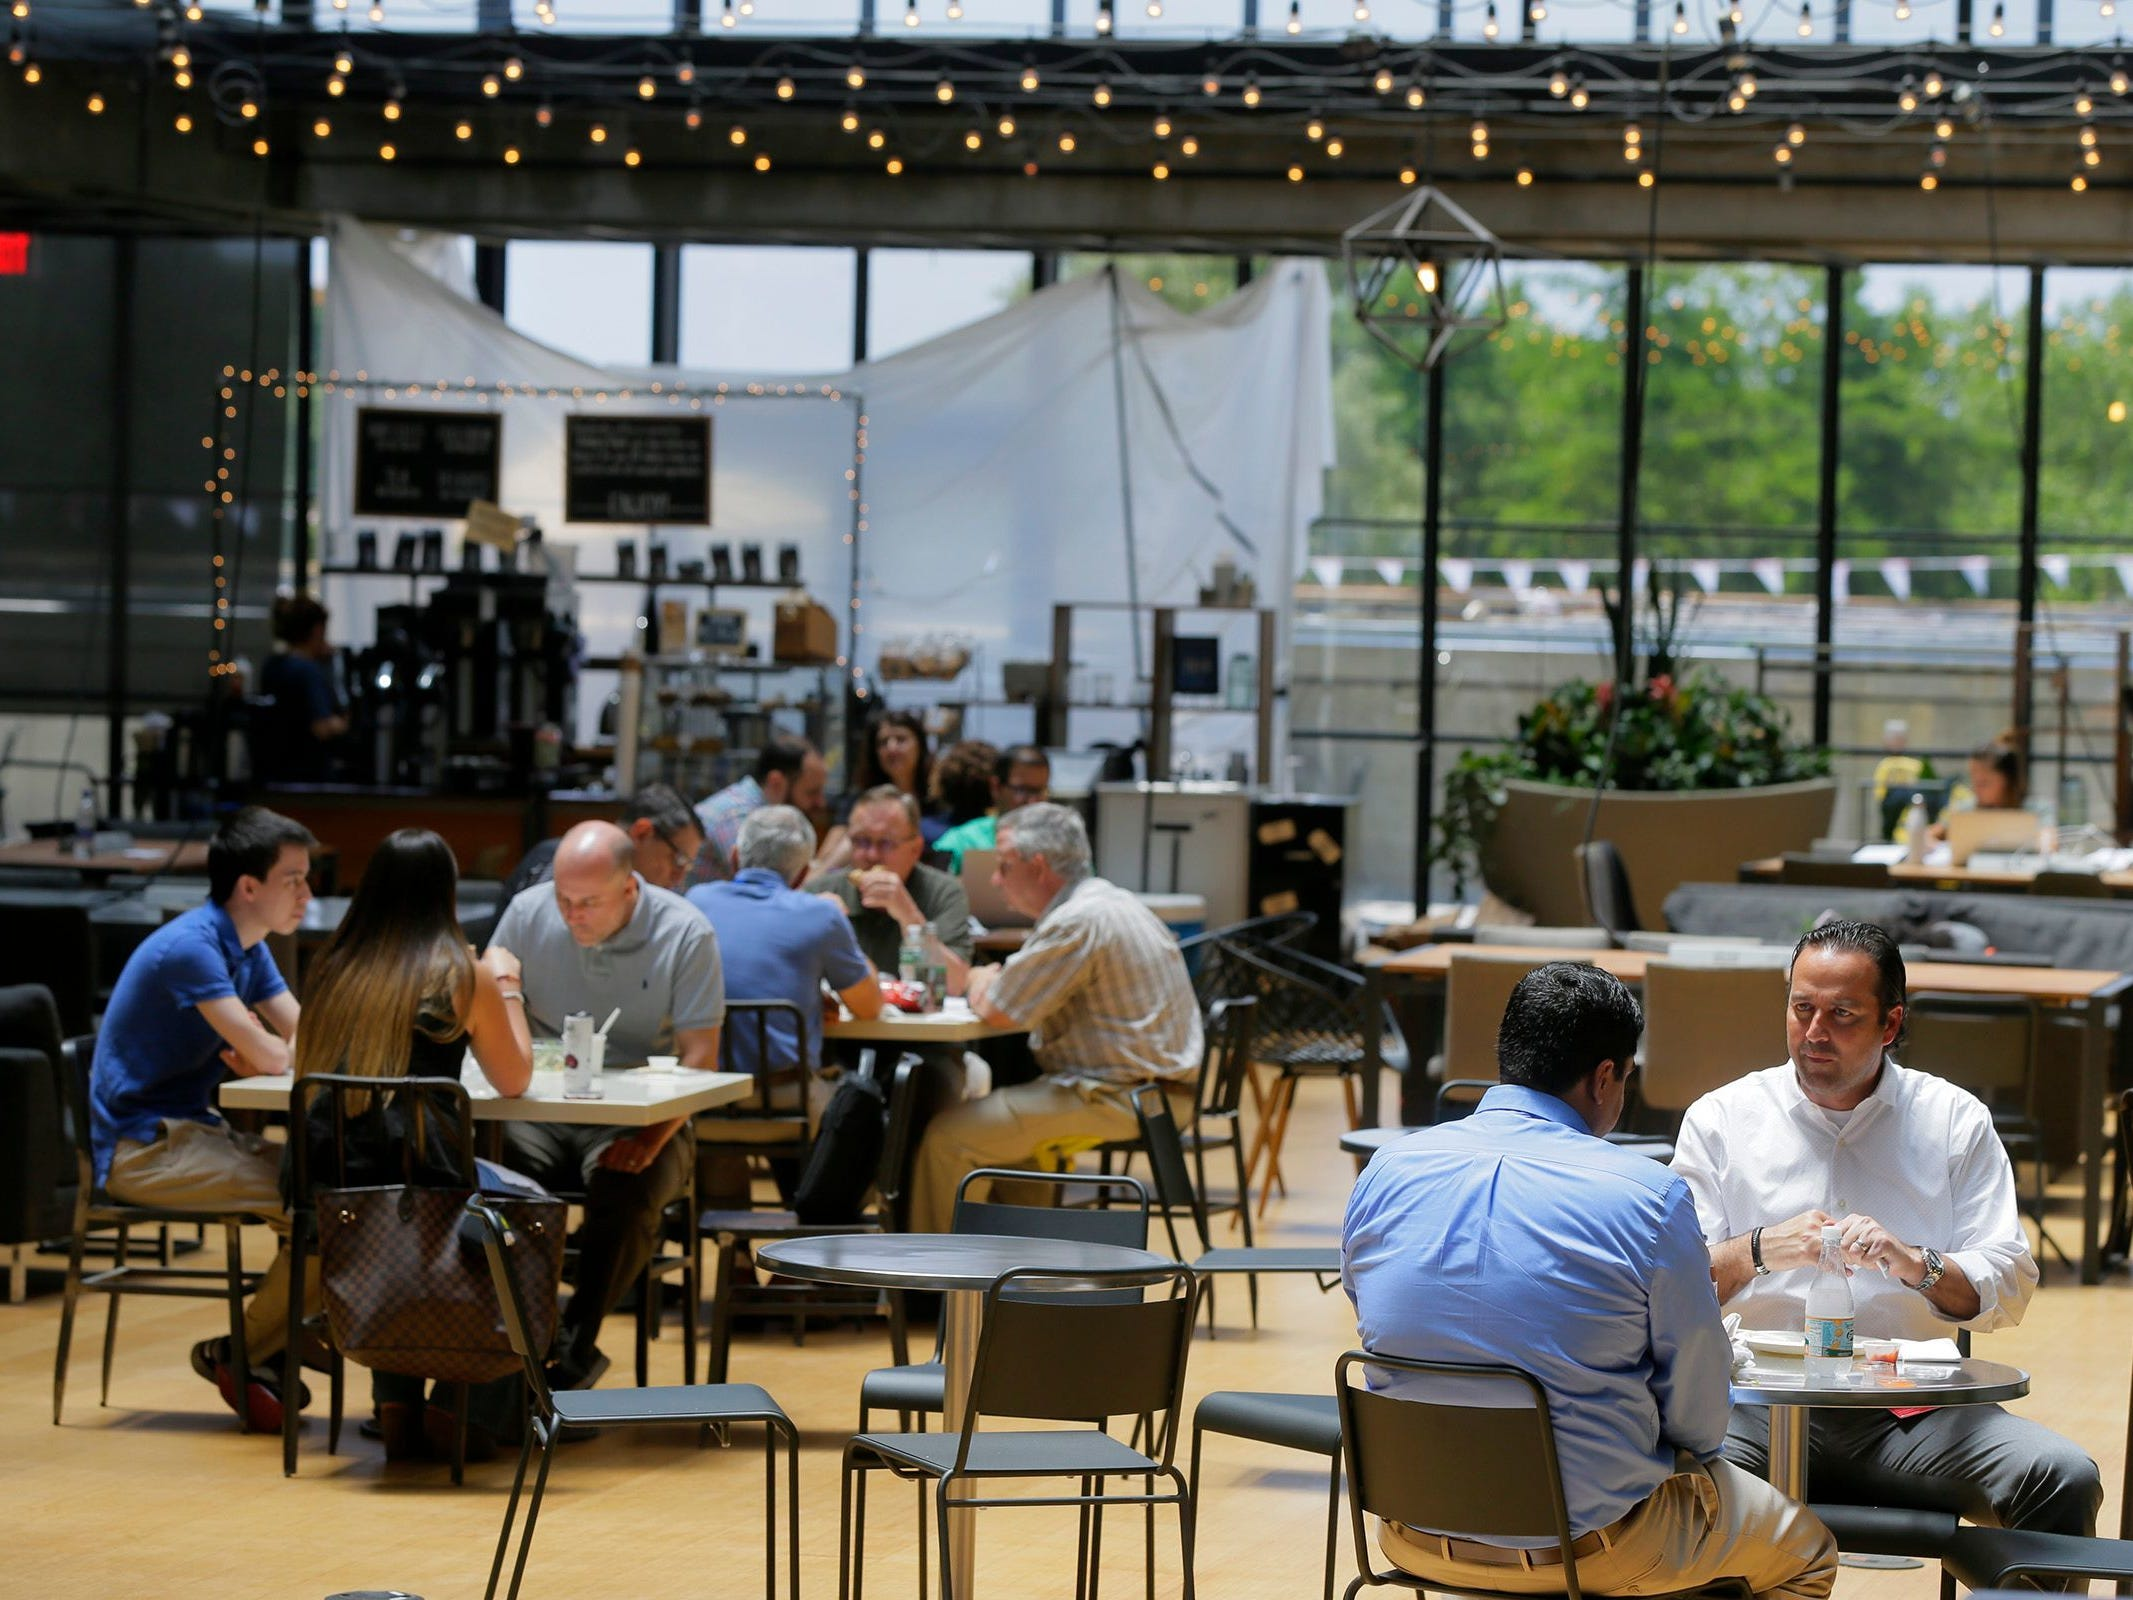 Workers eat lunch at Bell Works June 22 in Holmdel. $70 million in financing has been secured to continue upgrades in infrastructure and improvements for tenant spaces. Lunchtime at Bell Works, which is slowly becoming one of the hippest places to work in New Jersey, if not the country, in Holmdel, NJ Wednesday, June 22, 2017.